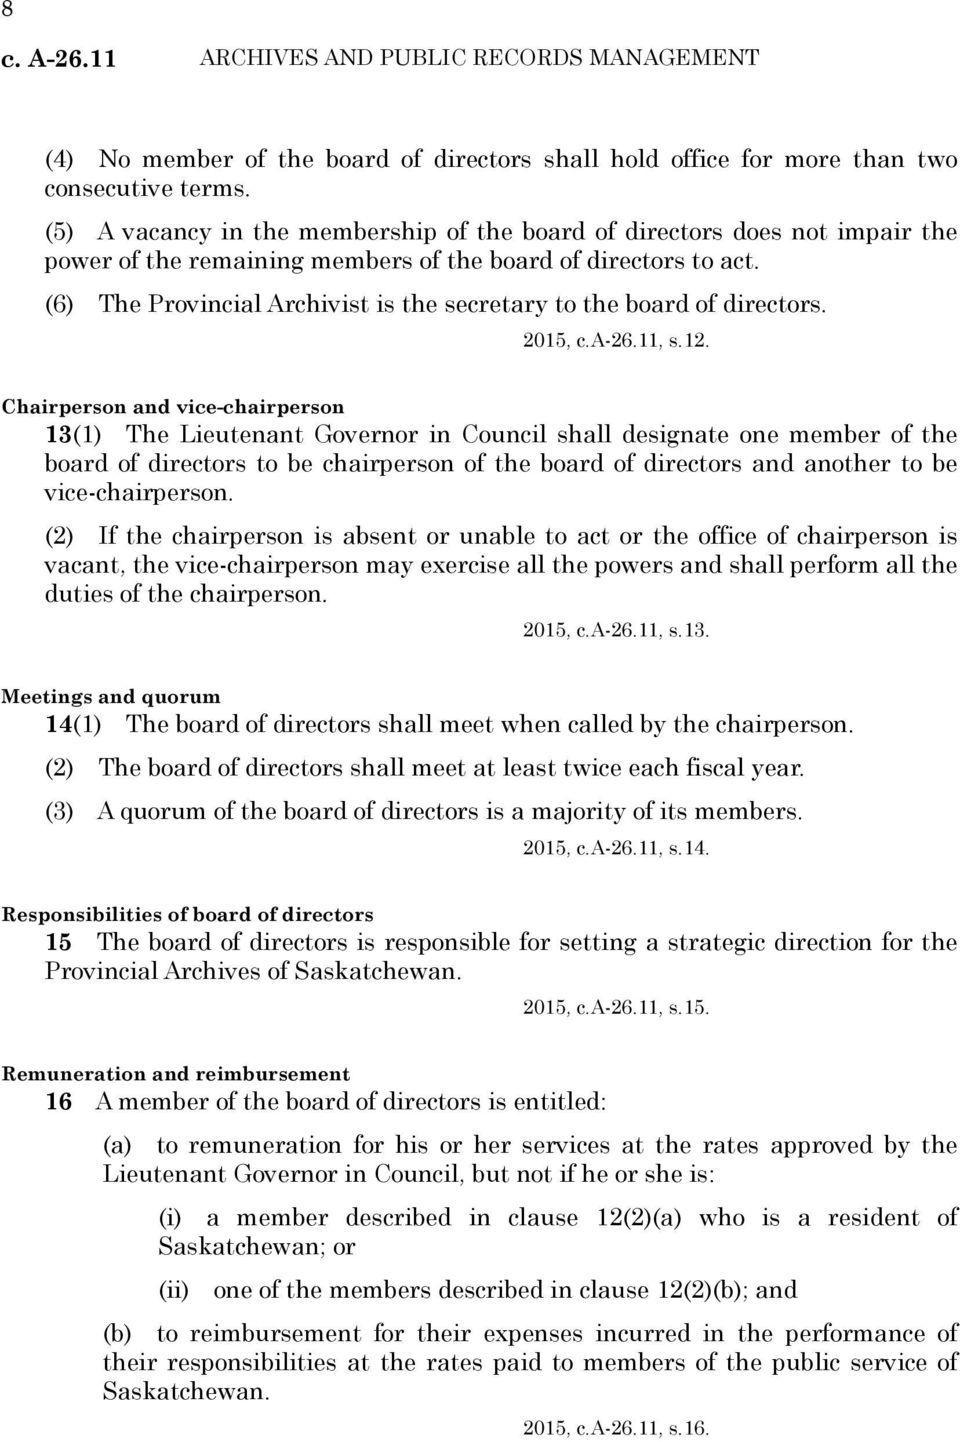 (6) The Provincial Archivist is the secretary to the board of directors. 2015, c.a-26.11, s.12.